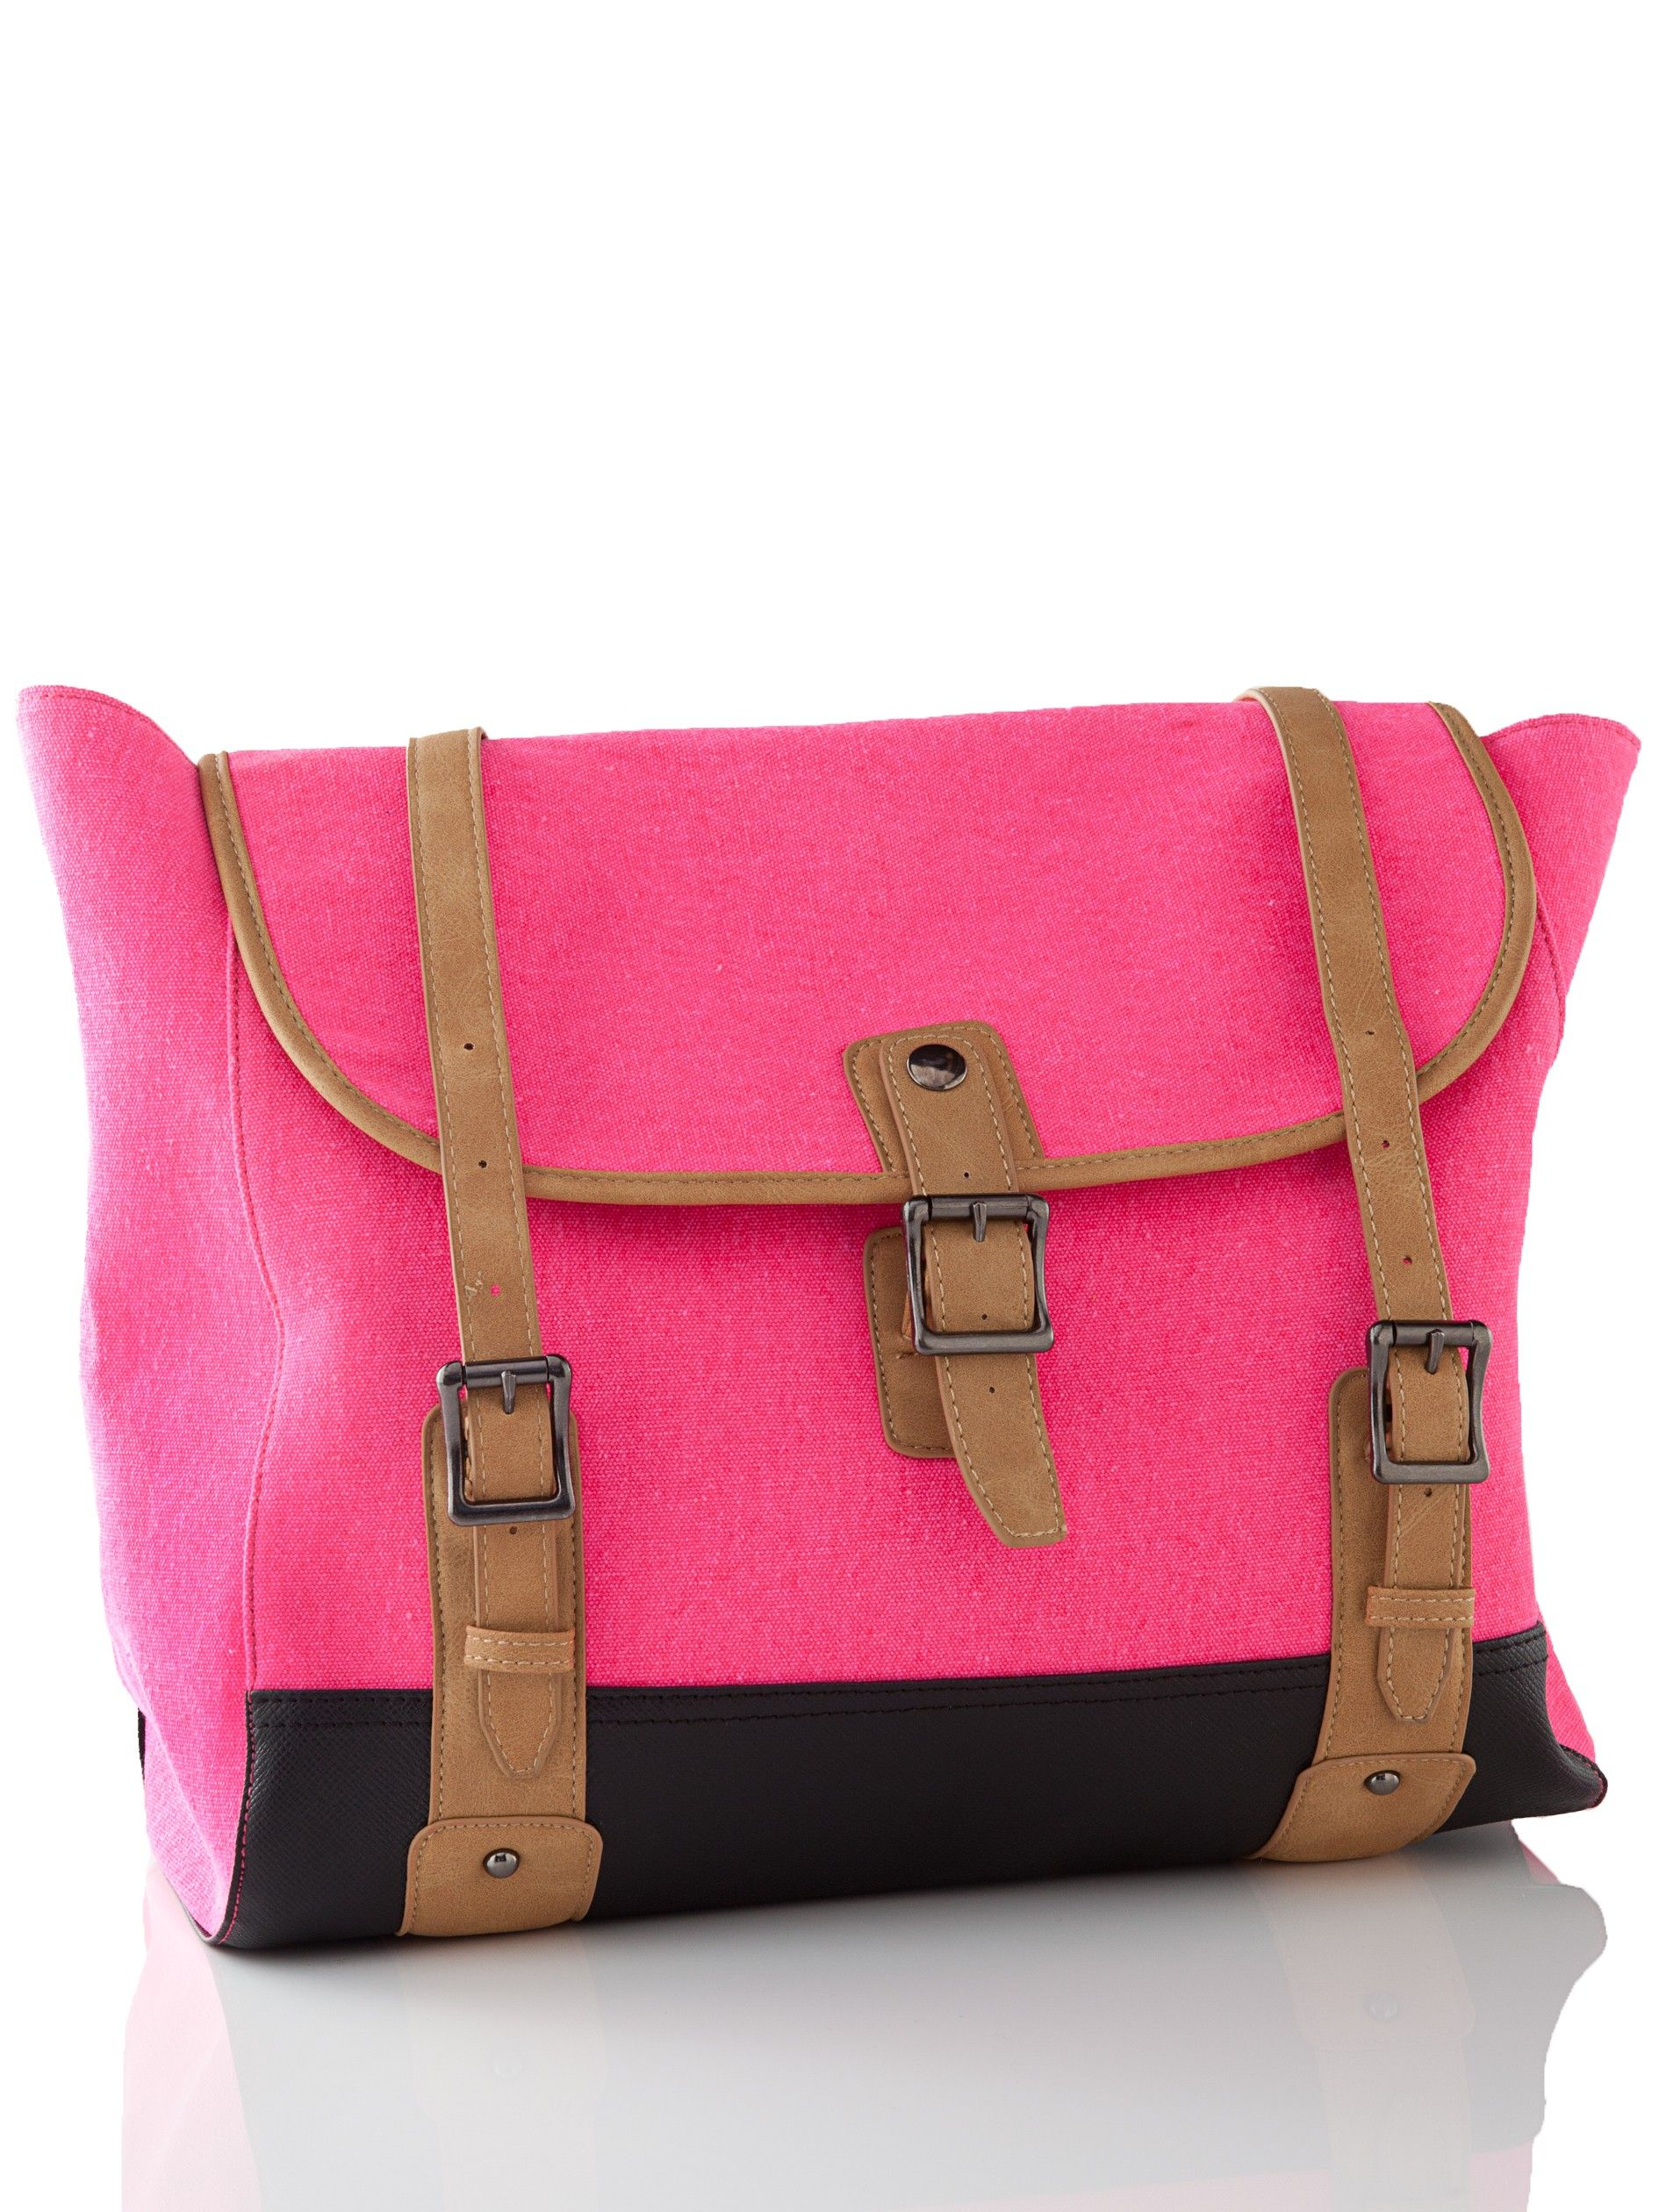 Get carried away with this bright pink handbag, you ll never want to put it  down! - Canvas with faux leather trim - Buckle closure - Three interior  pockets ... b9fd3906c2